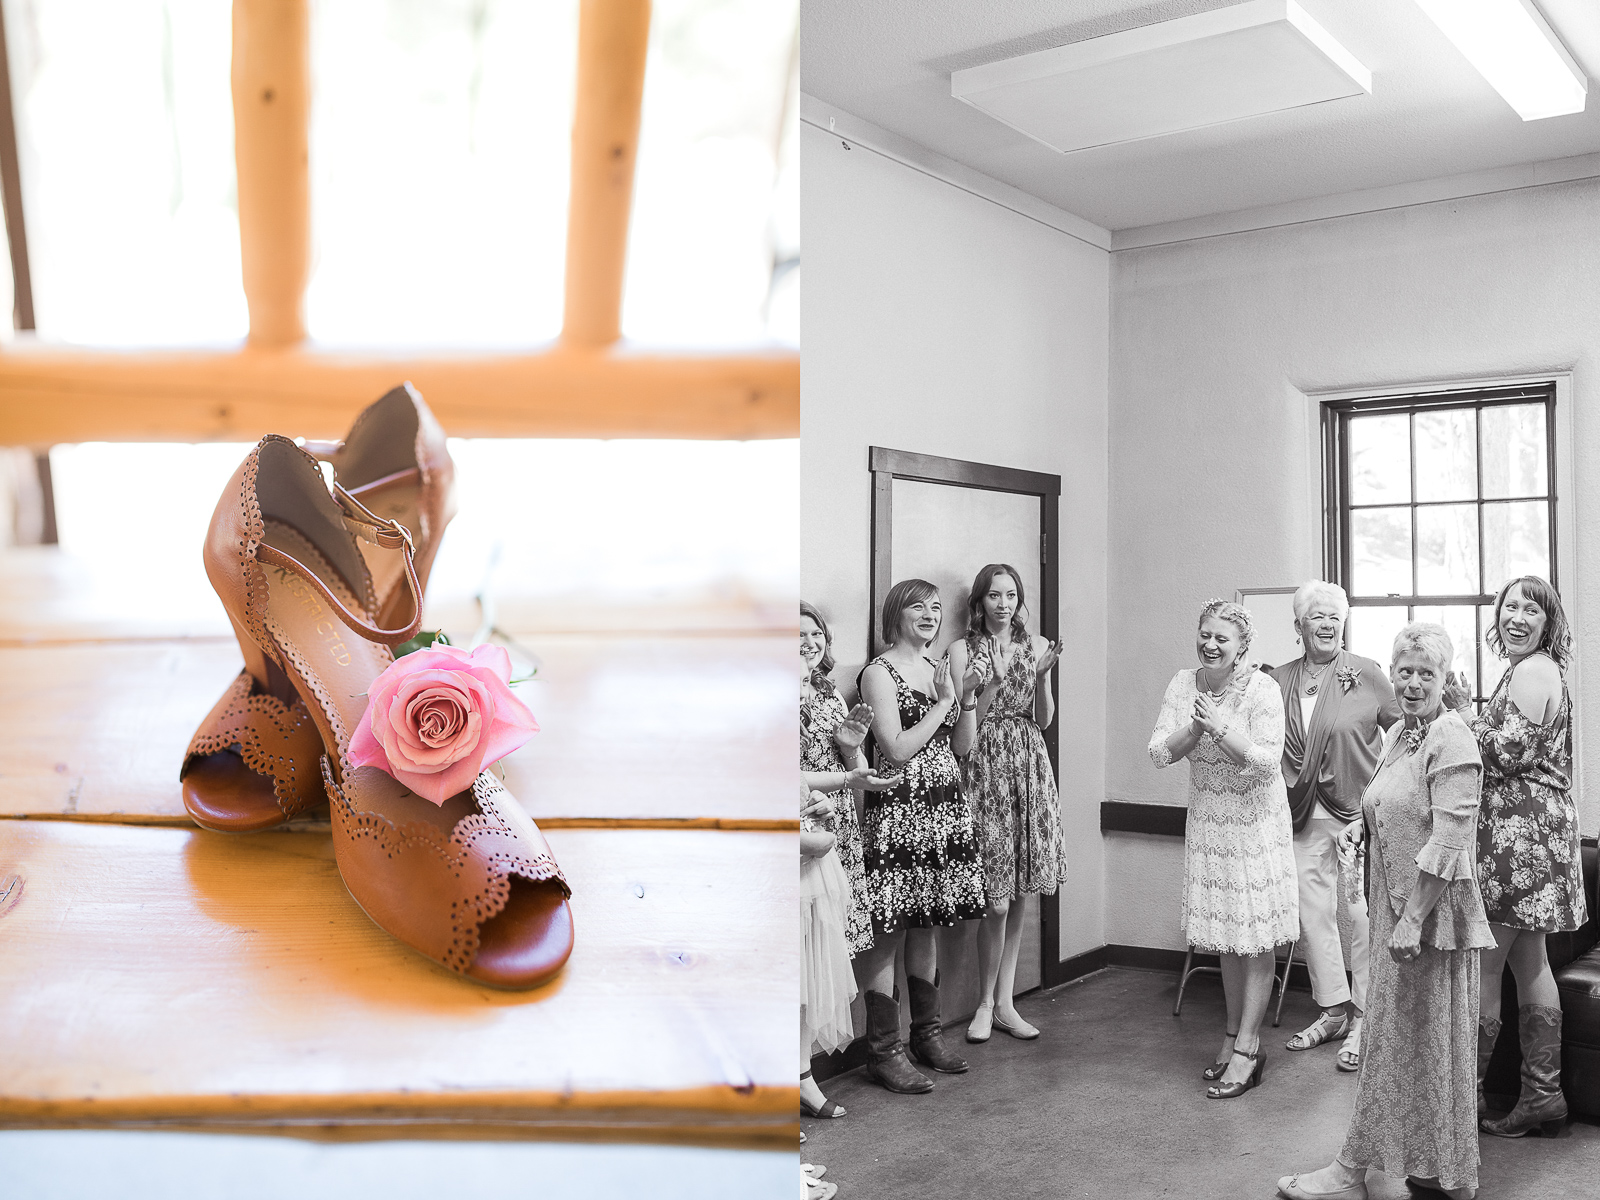 CarlyAnn & Dustin's Vintage Hynds Lodge Wedding in Curt Gowdy State Park in Laramie, Wyoming by Megan Lee Photography.